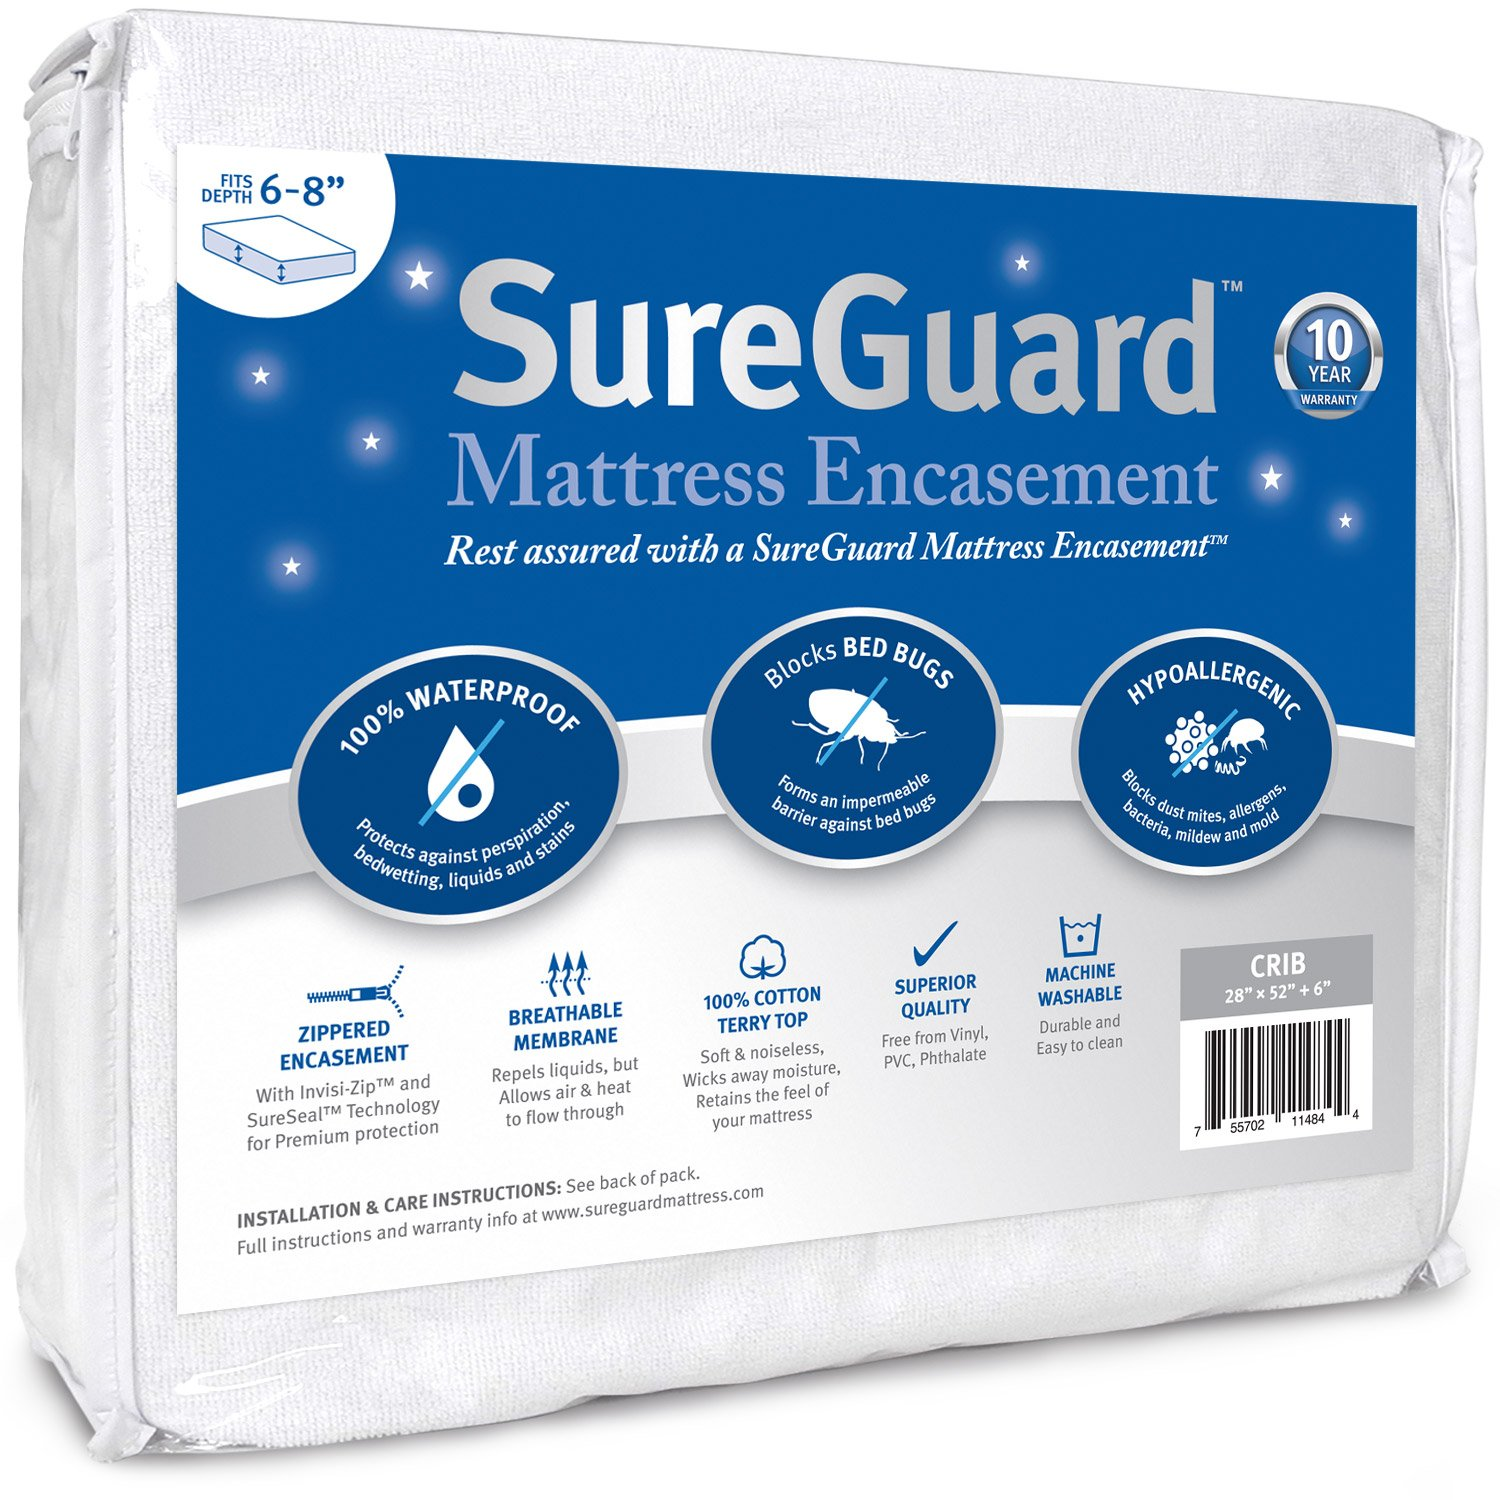 Crib Size SureGuard Mattress Encasement - 100% Waterproof, Bed Bug Proof, Hypoallergenic - Premium Zippered Six-Sided Cover